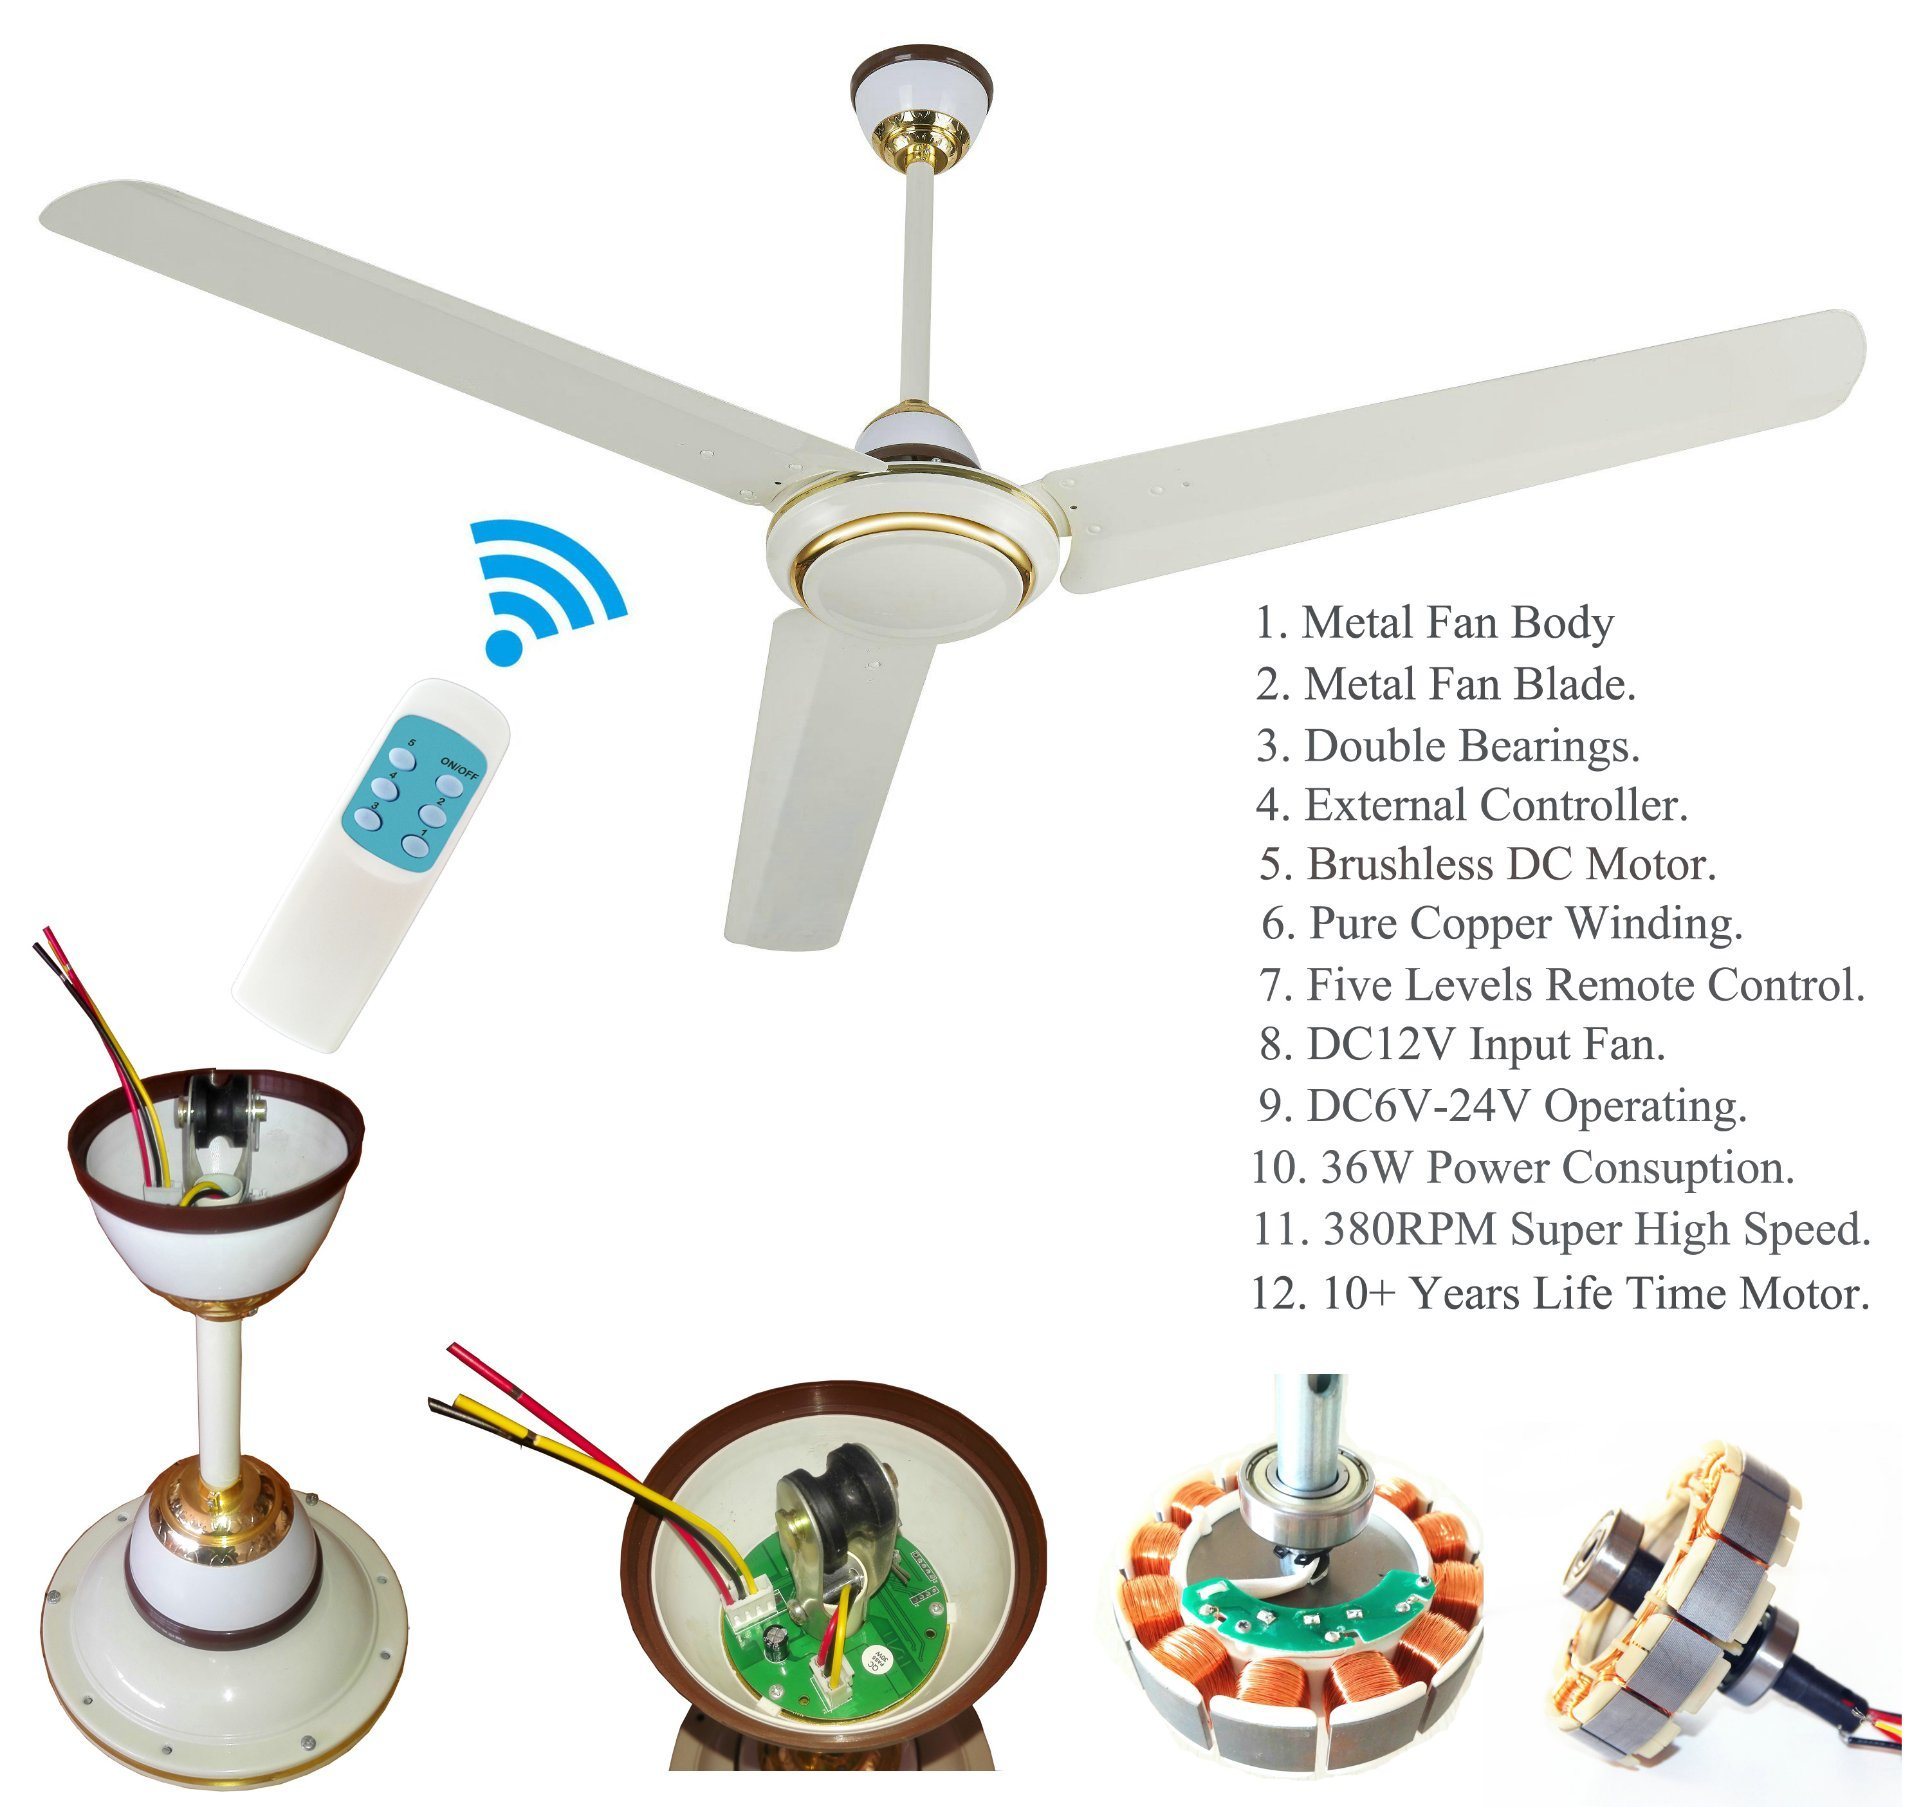 fan high shop bannon tool cfm northern volume tools product ceiling